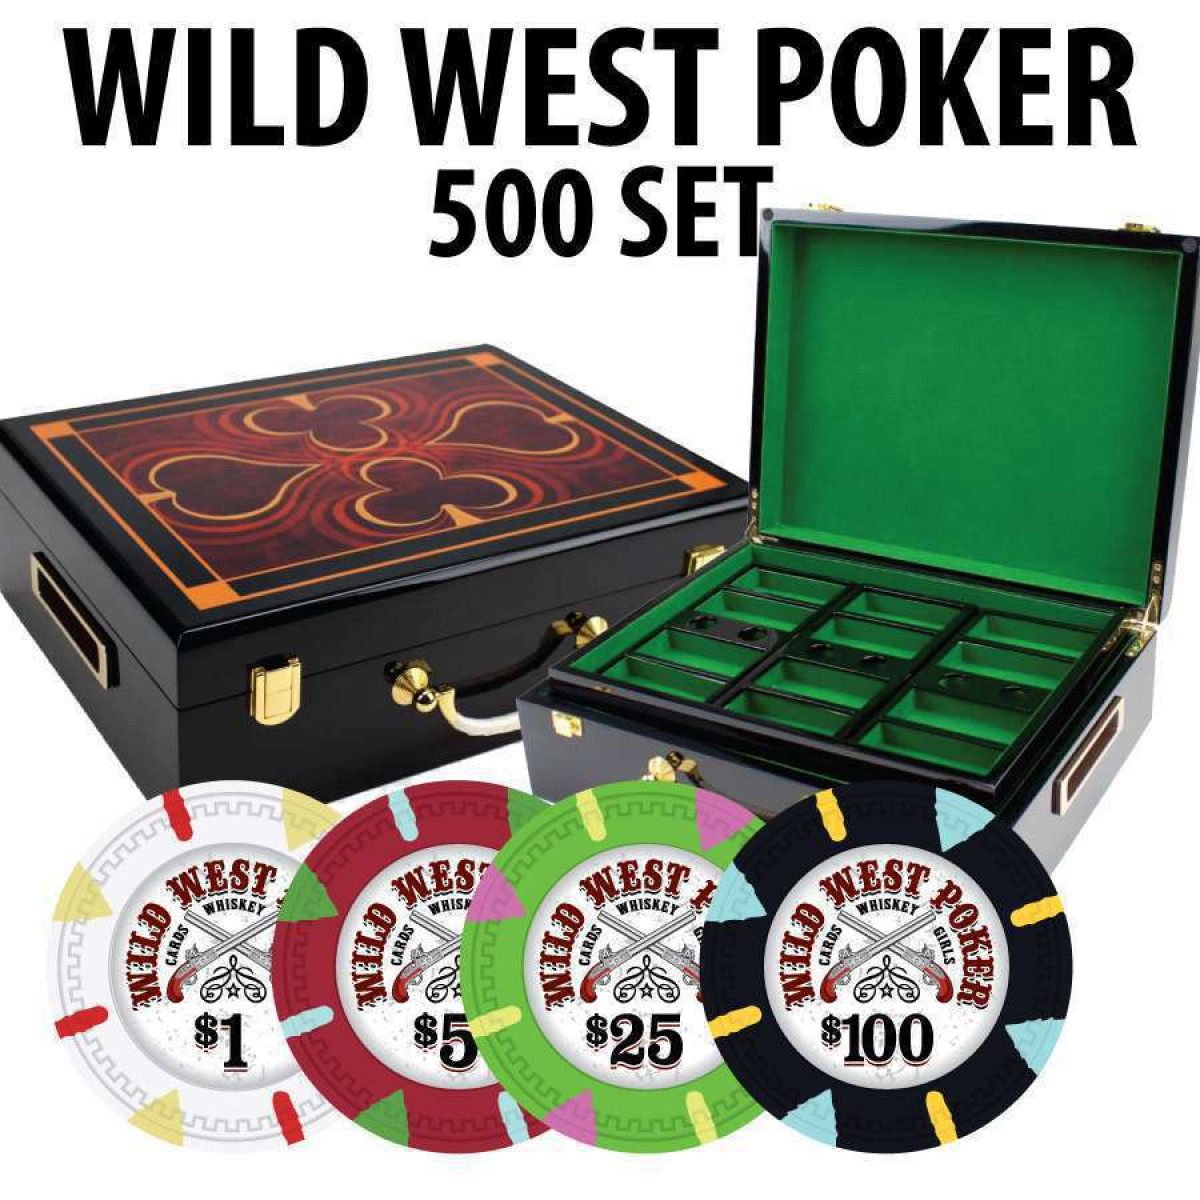 Game Gallery 400 Piece Poker Chip Set